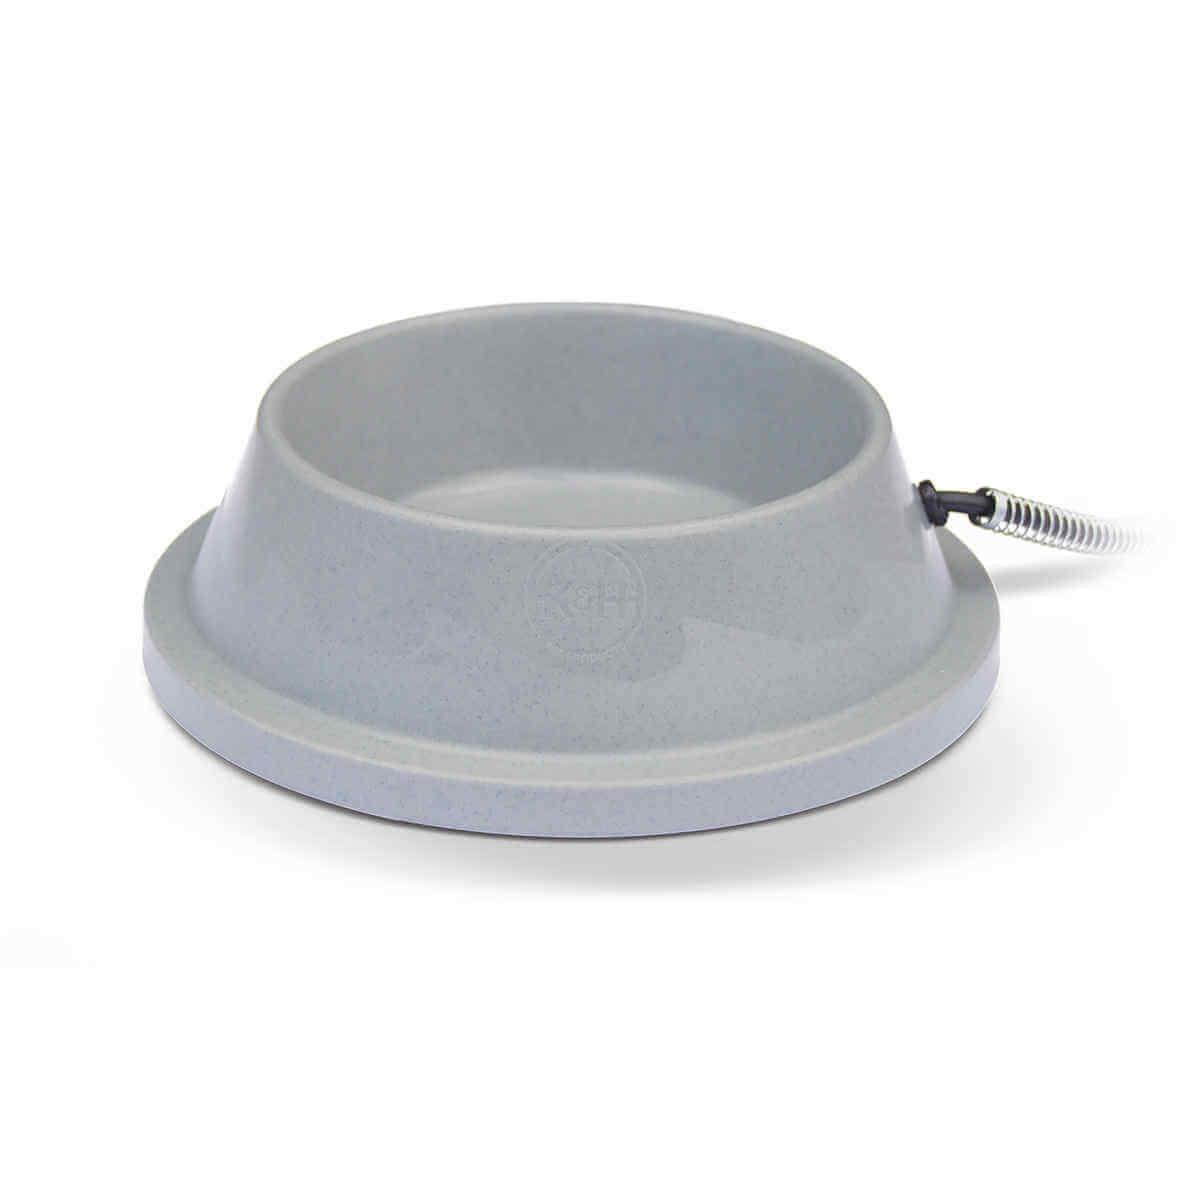 K&H Pet Products Pet Thermal Bowl Gray 10.5